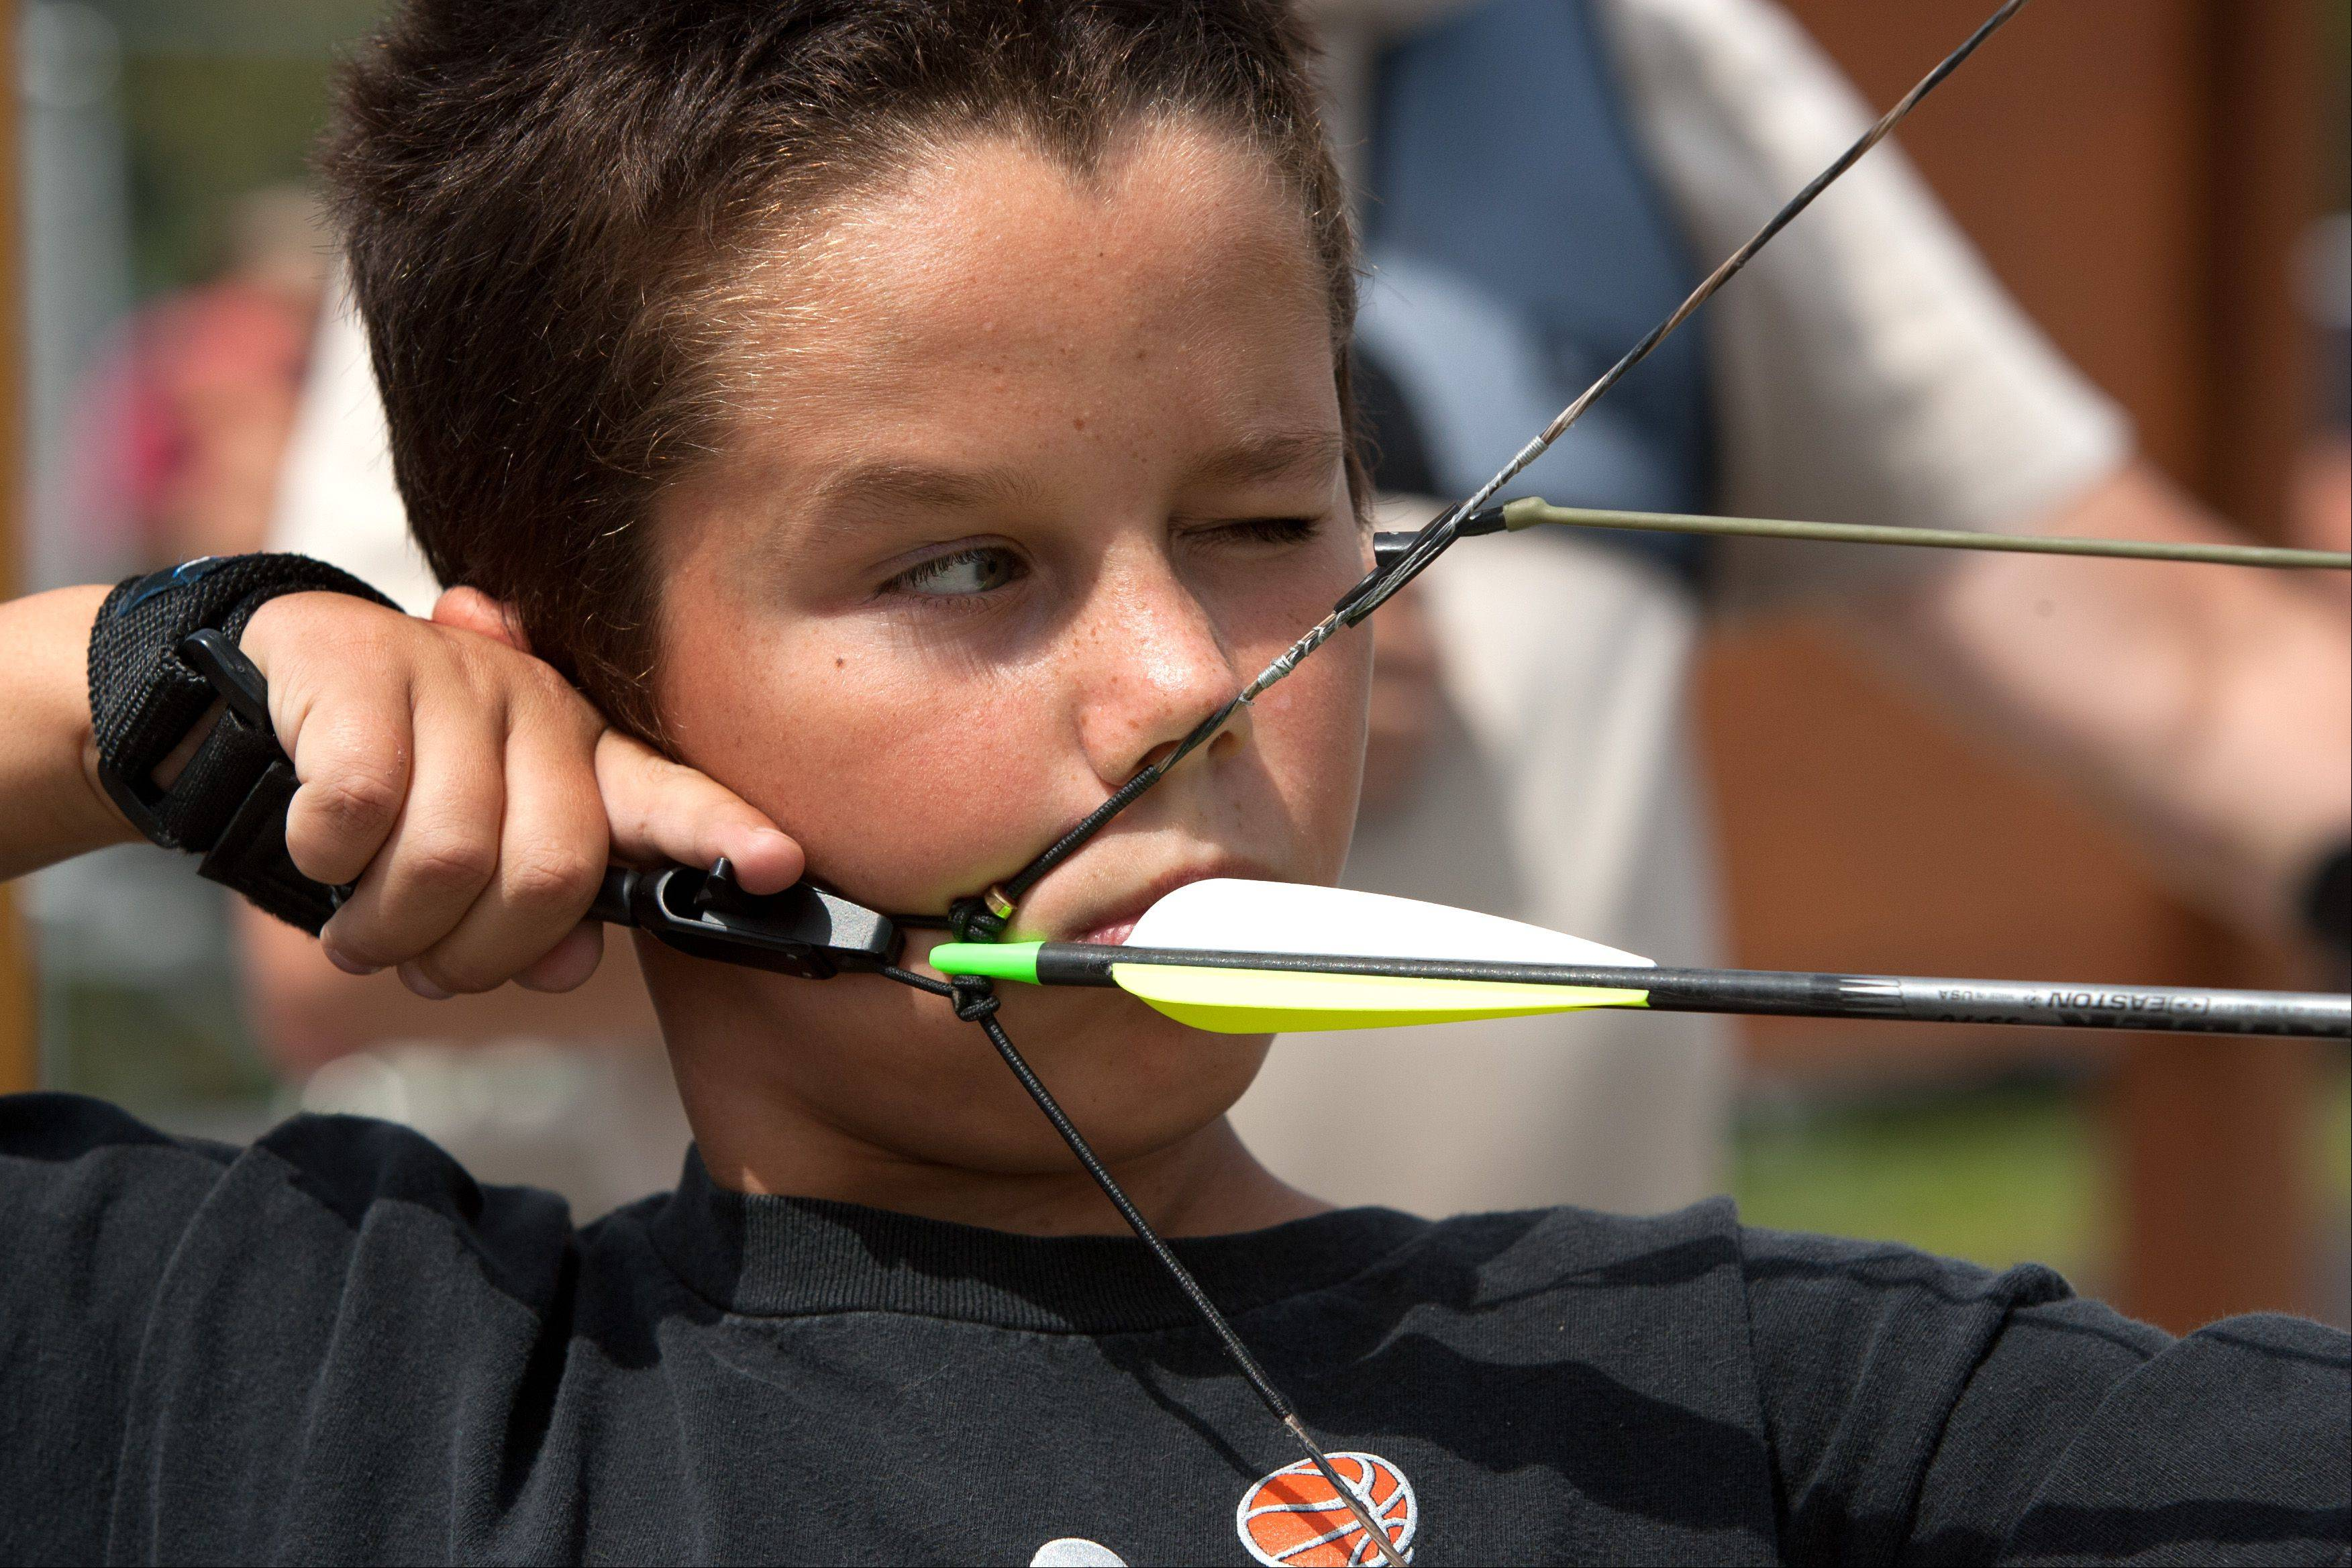 Ray Black, 11, of Wheaton eyes his target, during the DuPage County Forest Preserve's opening of an upgraded archery range, at the Blackwell Forest Preserve.